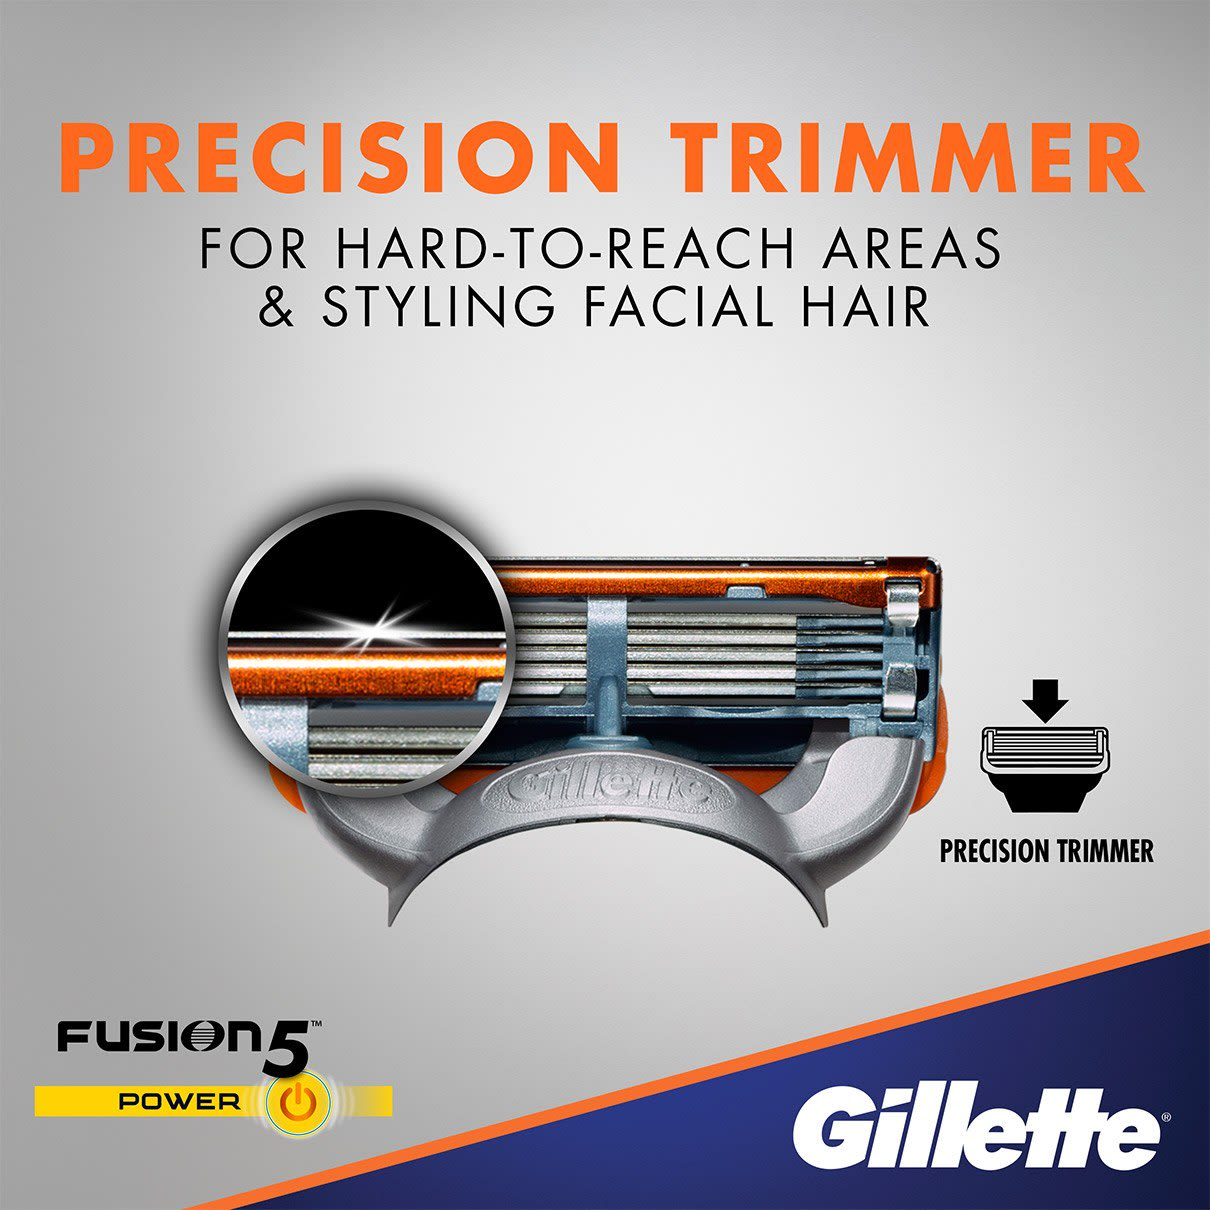 Precision Trimmer for hard-to-reach areas & styling facial hair